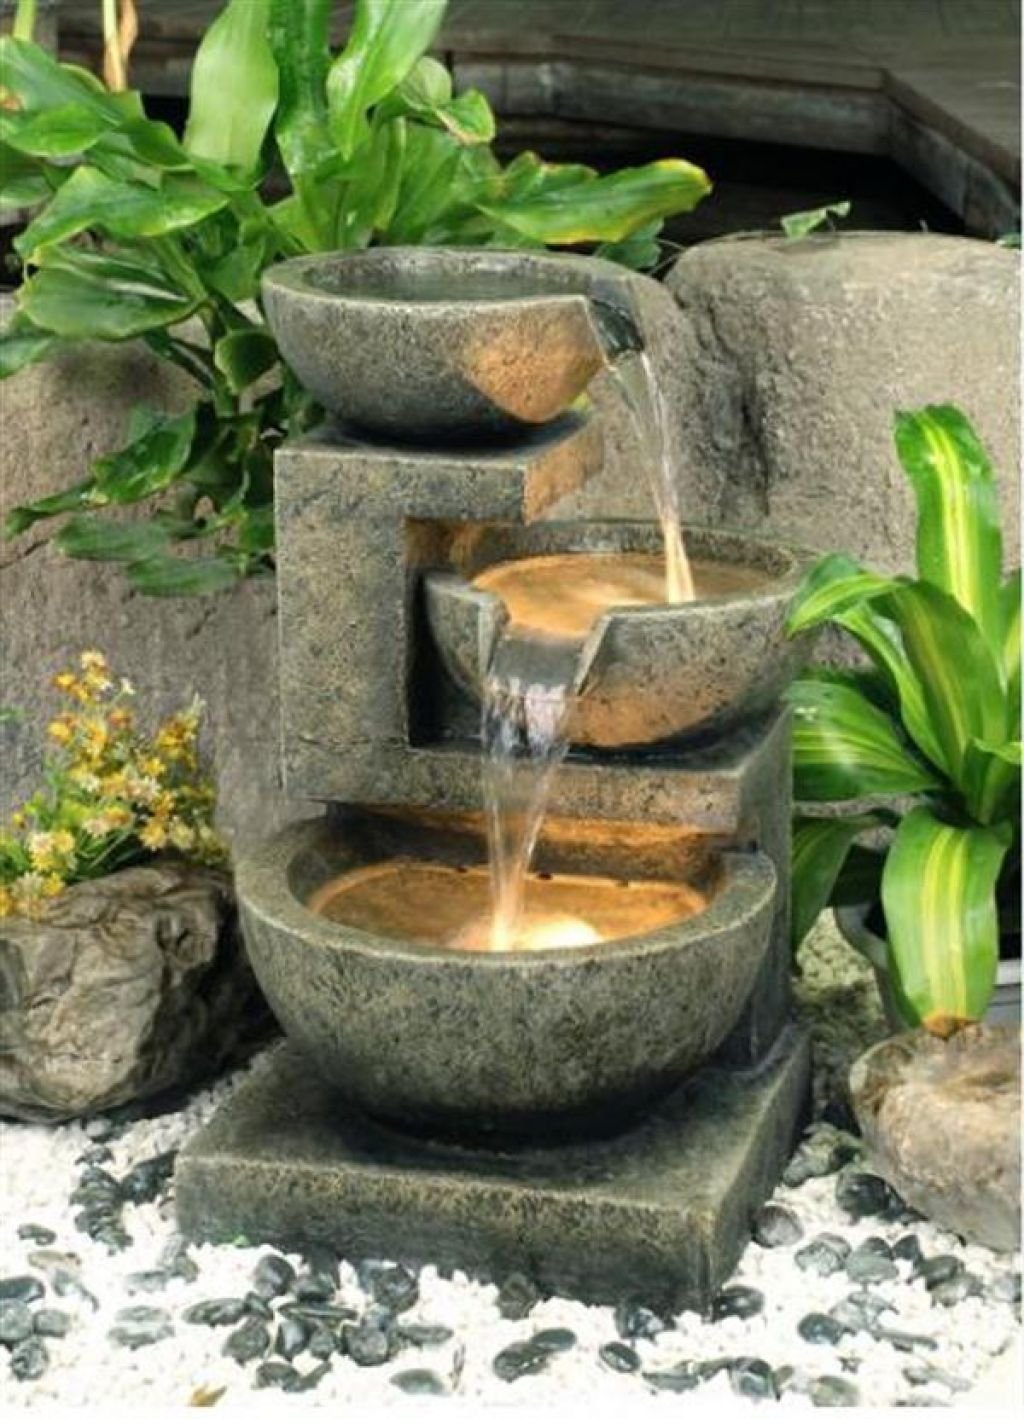 Merveilleux House , Easy DIY Project: Homemade Water Fountains For Gardenu0027s Focal Point  : Inspiring Homemade